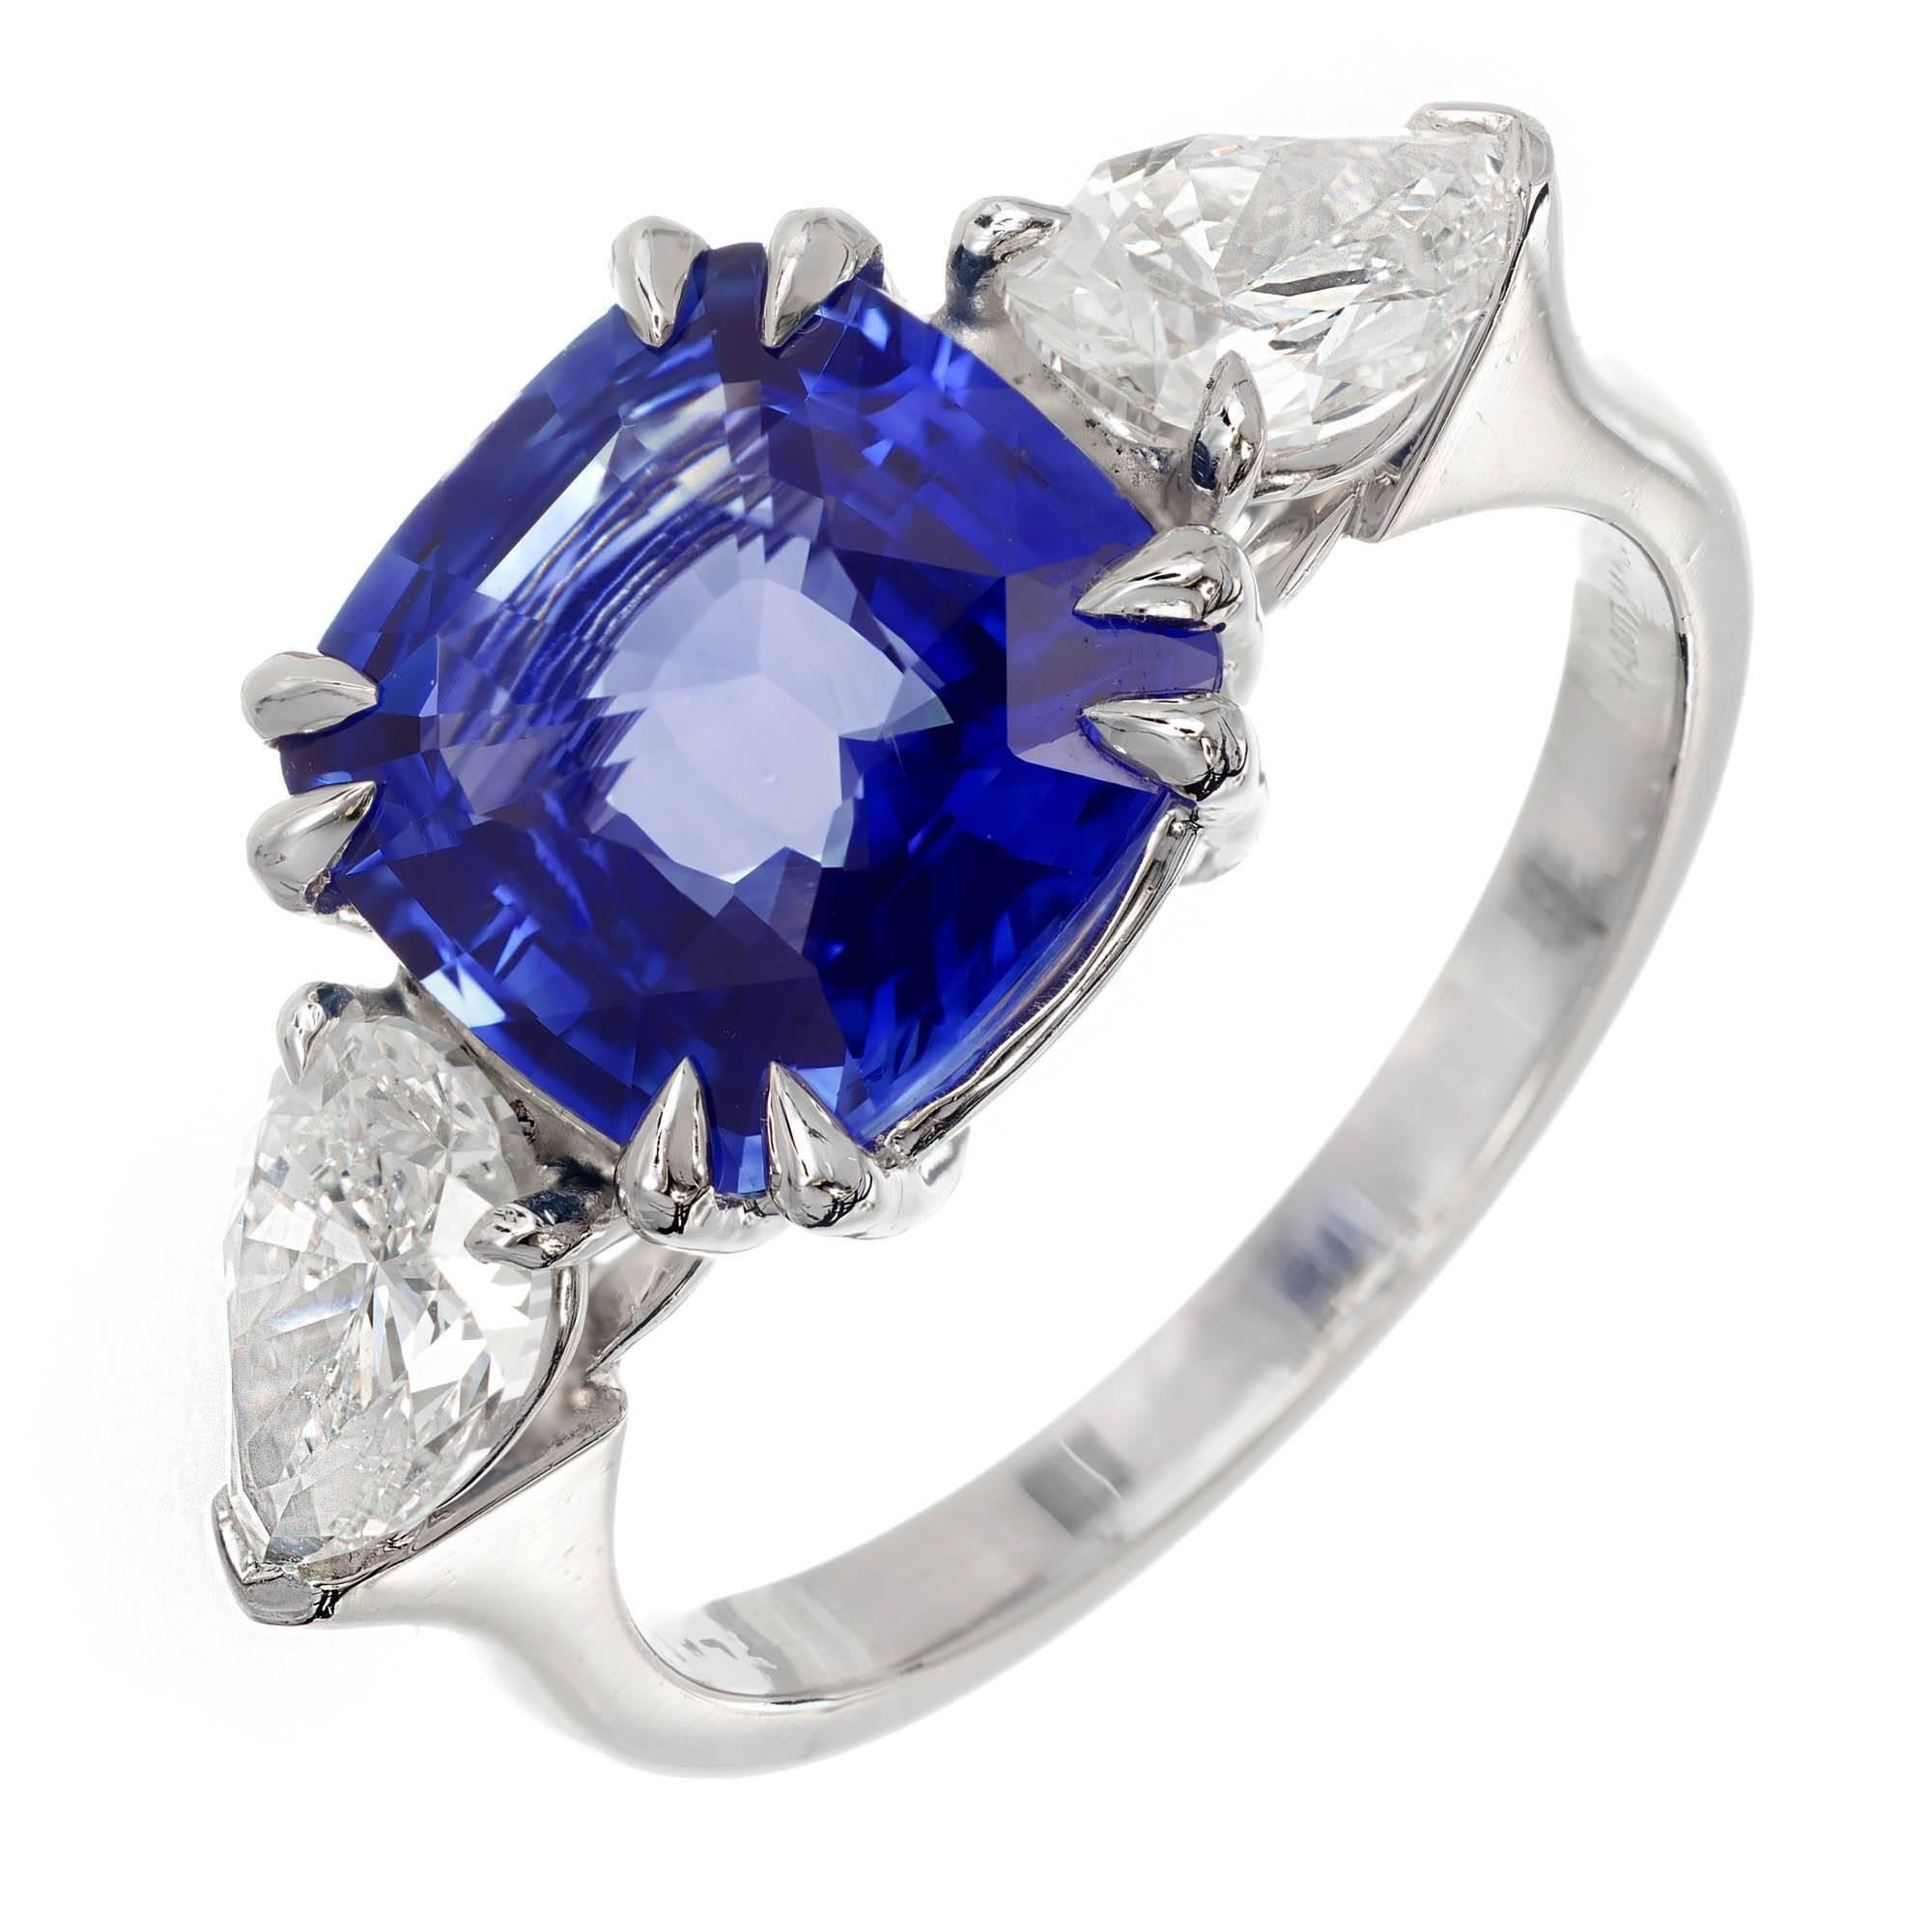 rings wedding engagement joan sapphire price ring all top oval royal fine blue sapphires sku buy wholesale